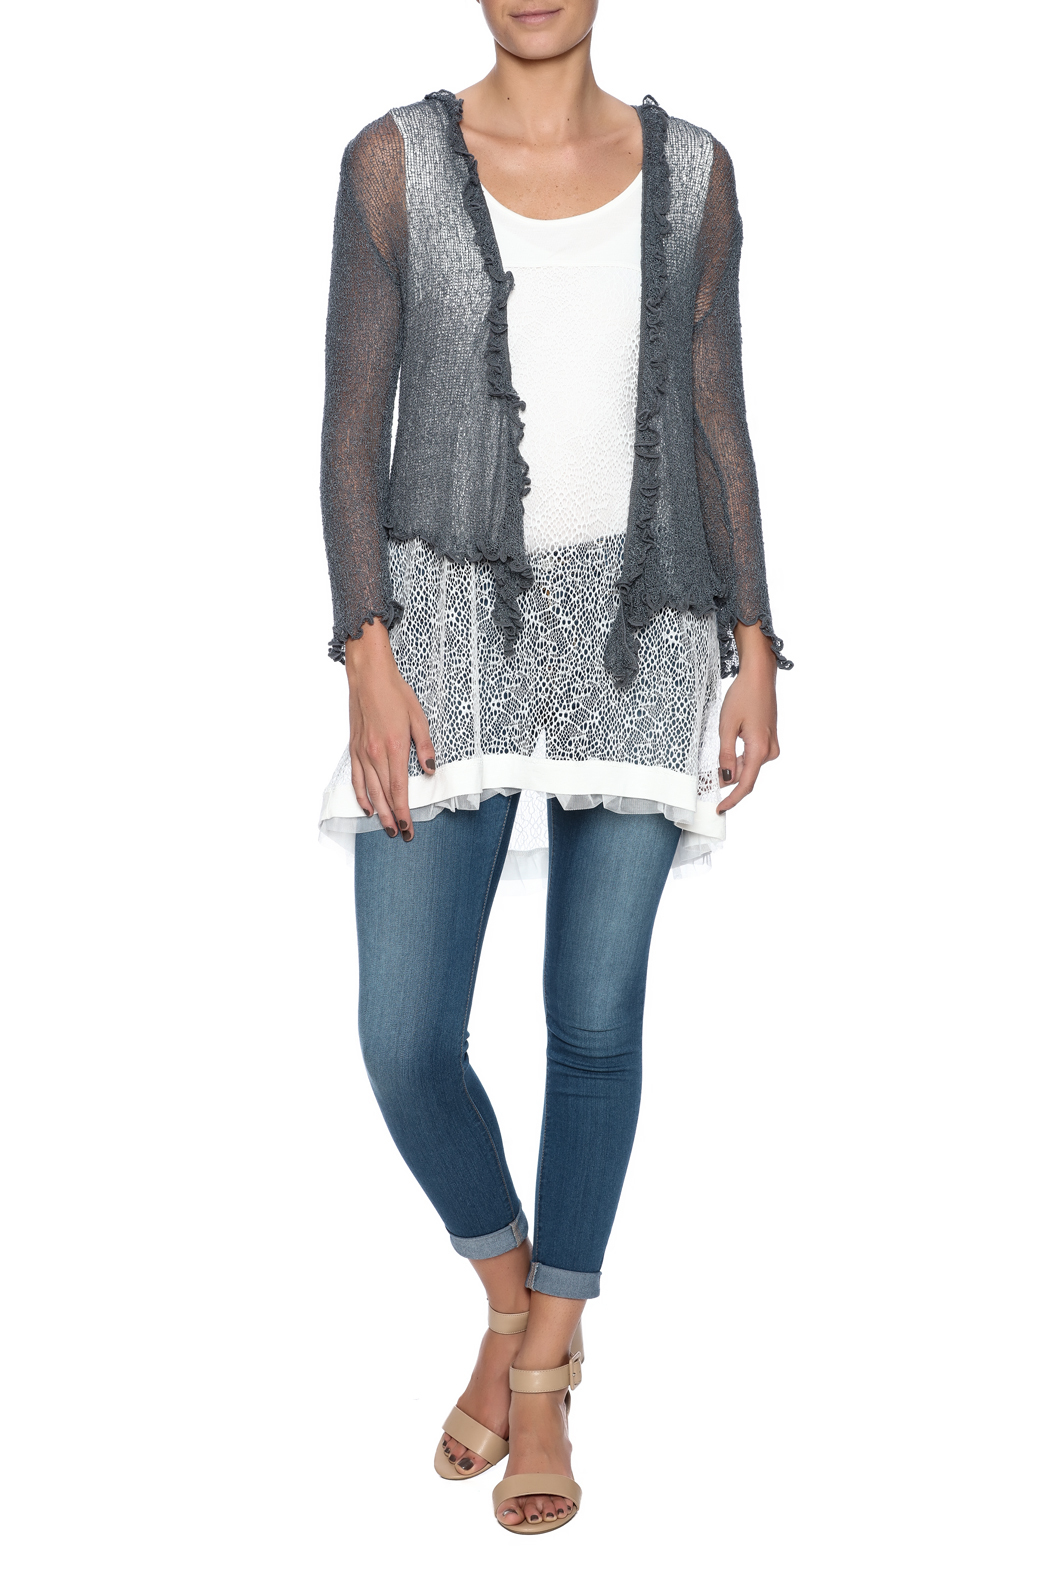 Scarborough Fair Ruffle Cardigan from Saint Paul by Scarborough ...